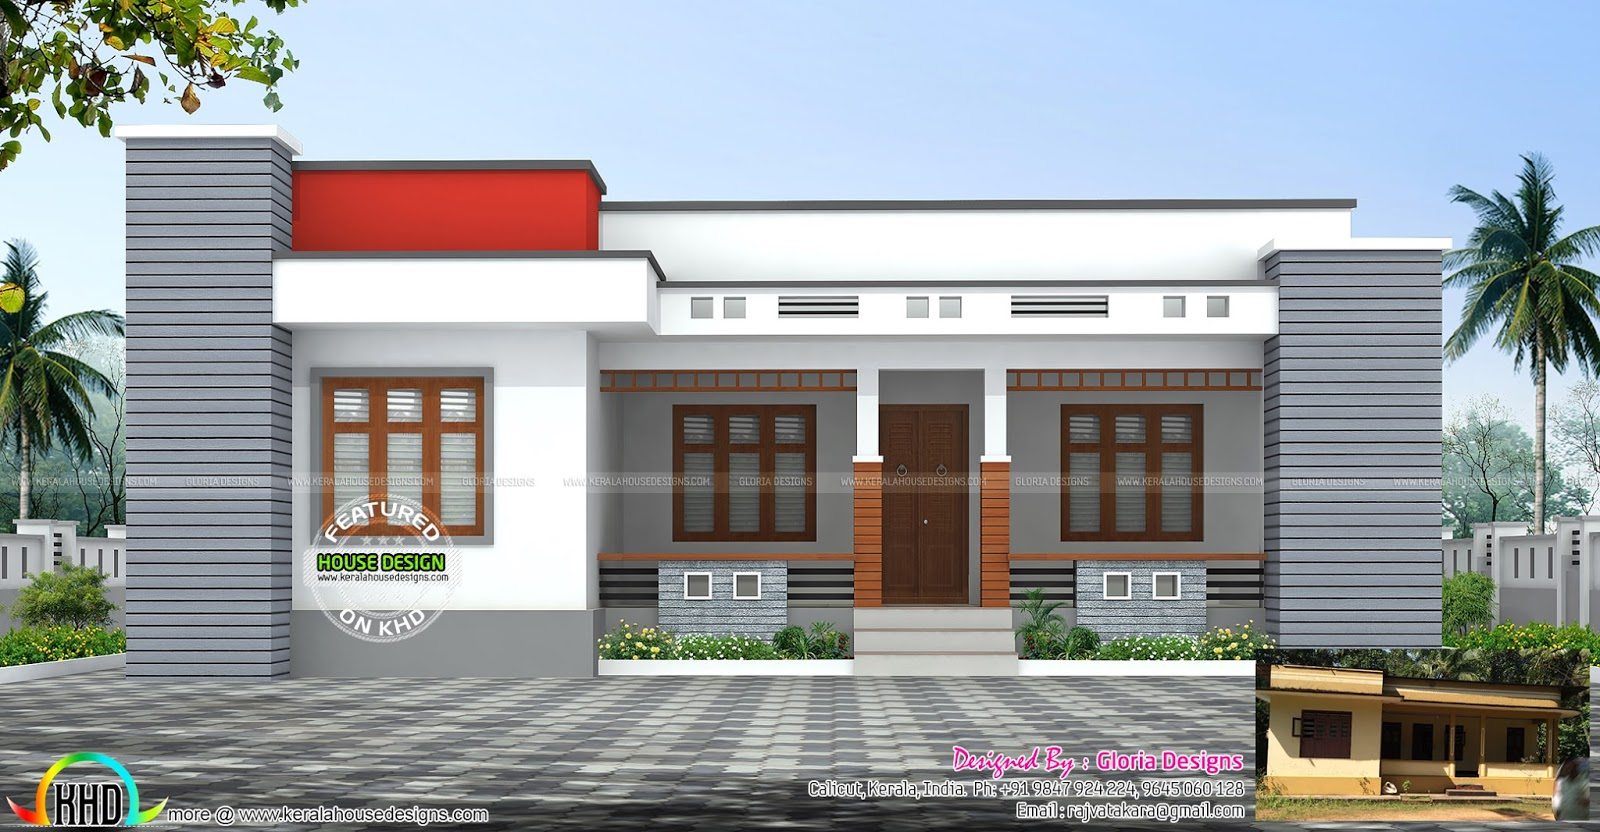 April 2016 kerala home design and floor plans House designs single floor